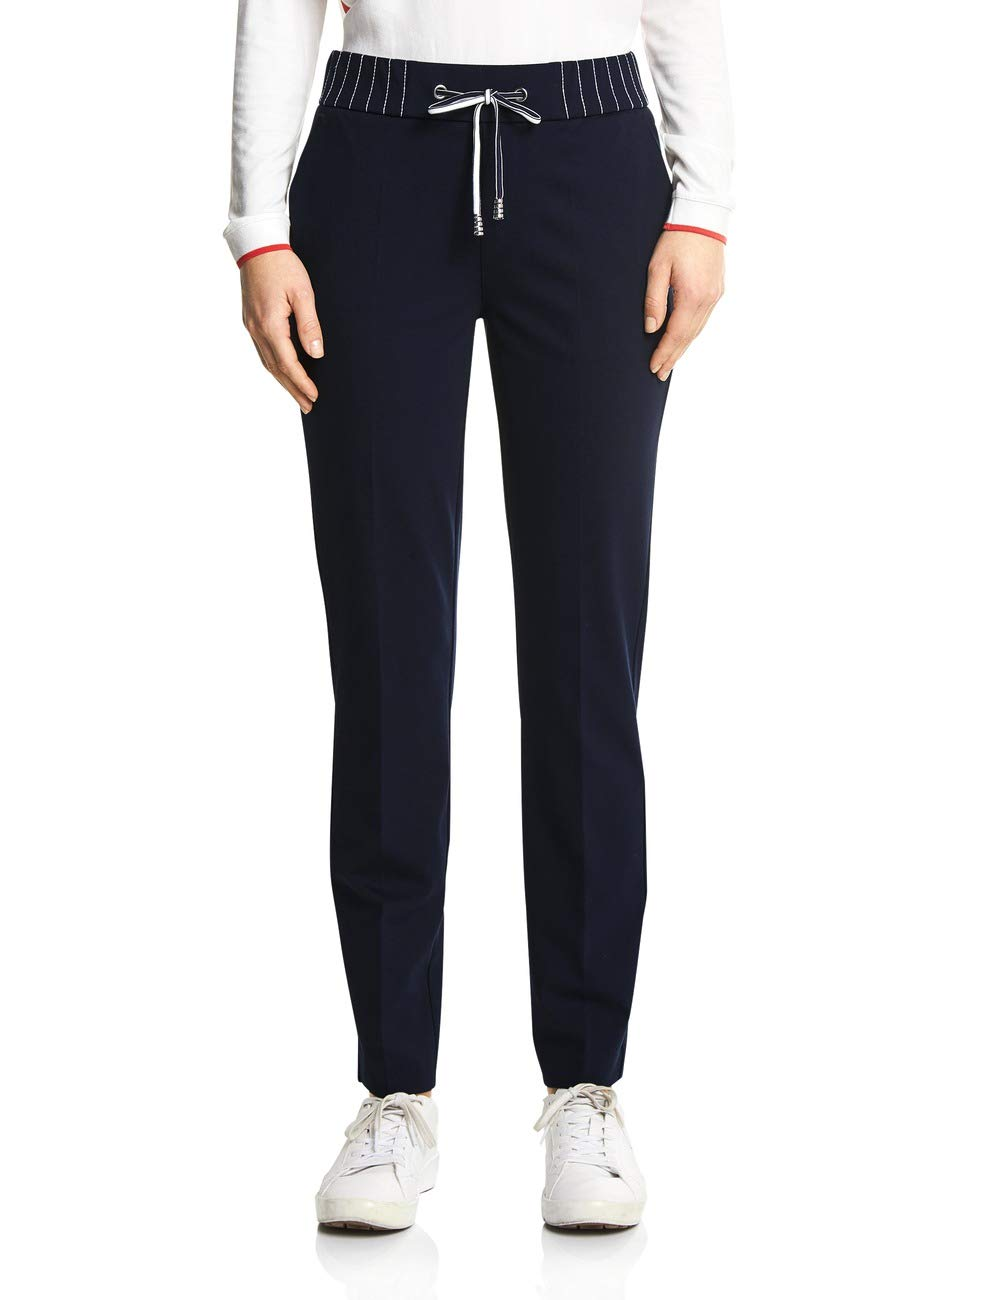 Street Blue PantalonBleudeep 371864 One Fabricant38Femme Fay 11238W38 l30taille xCdWBore